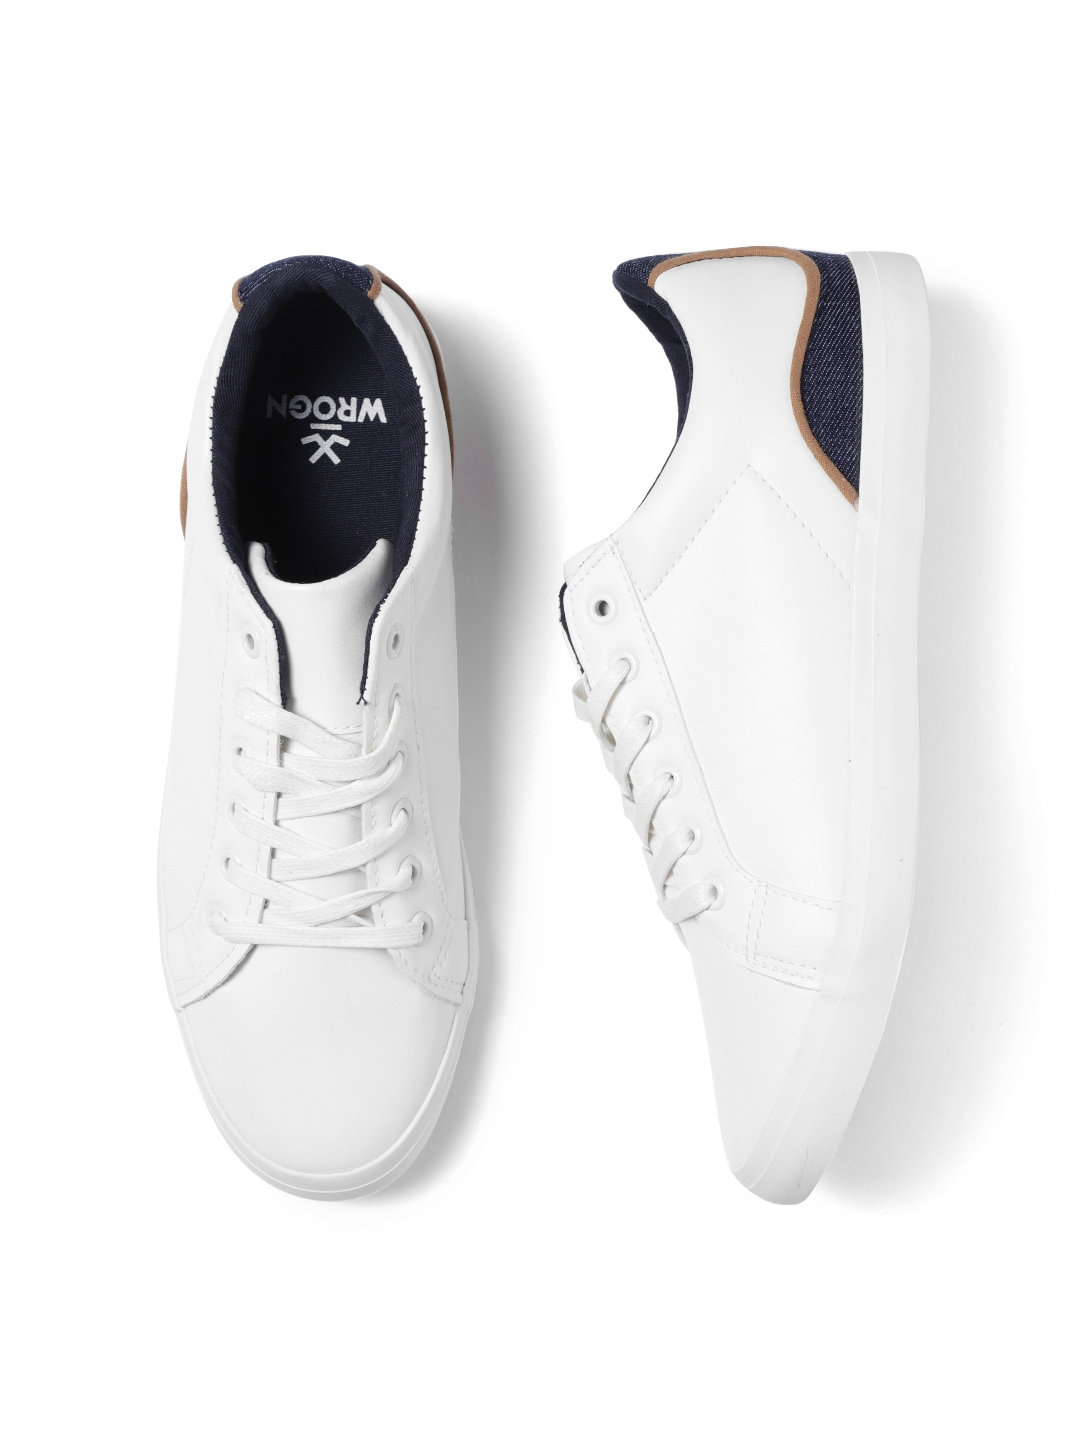 WROGN Men White Sneakers - Casual Shoes